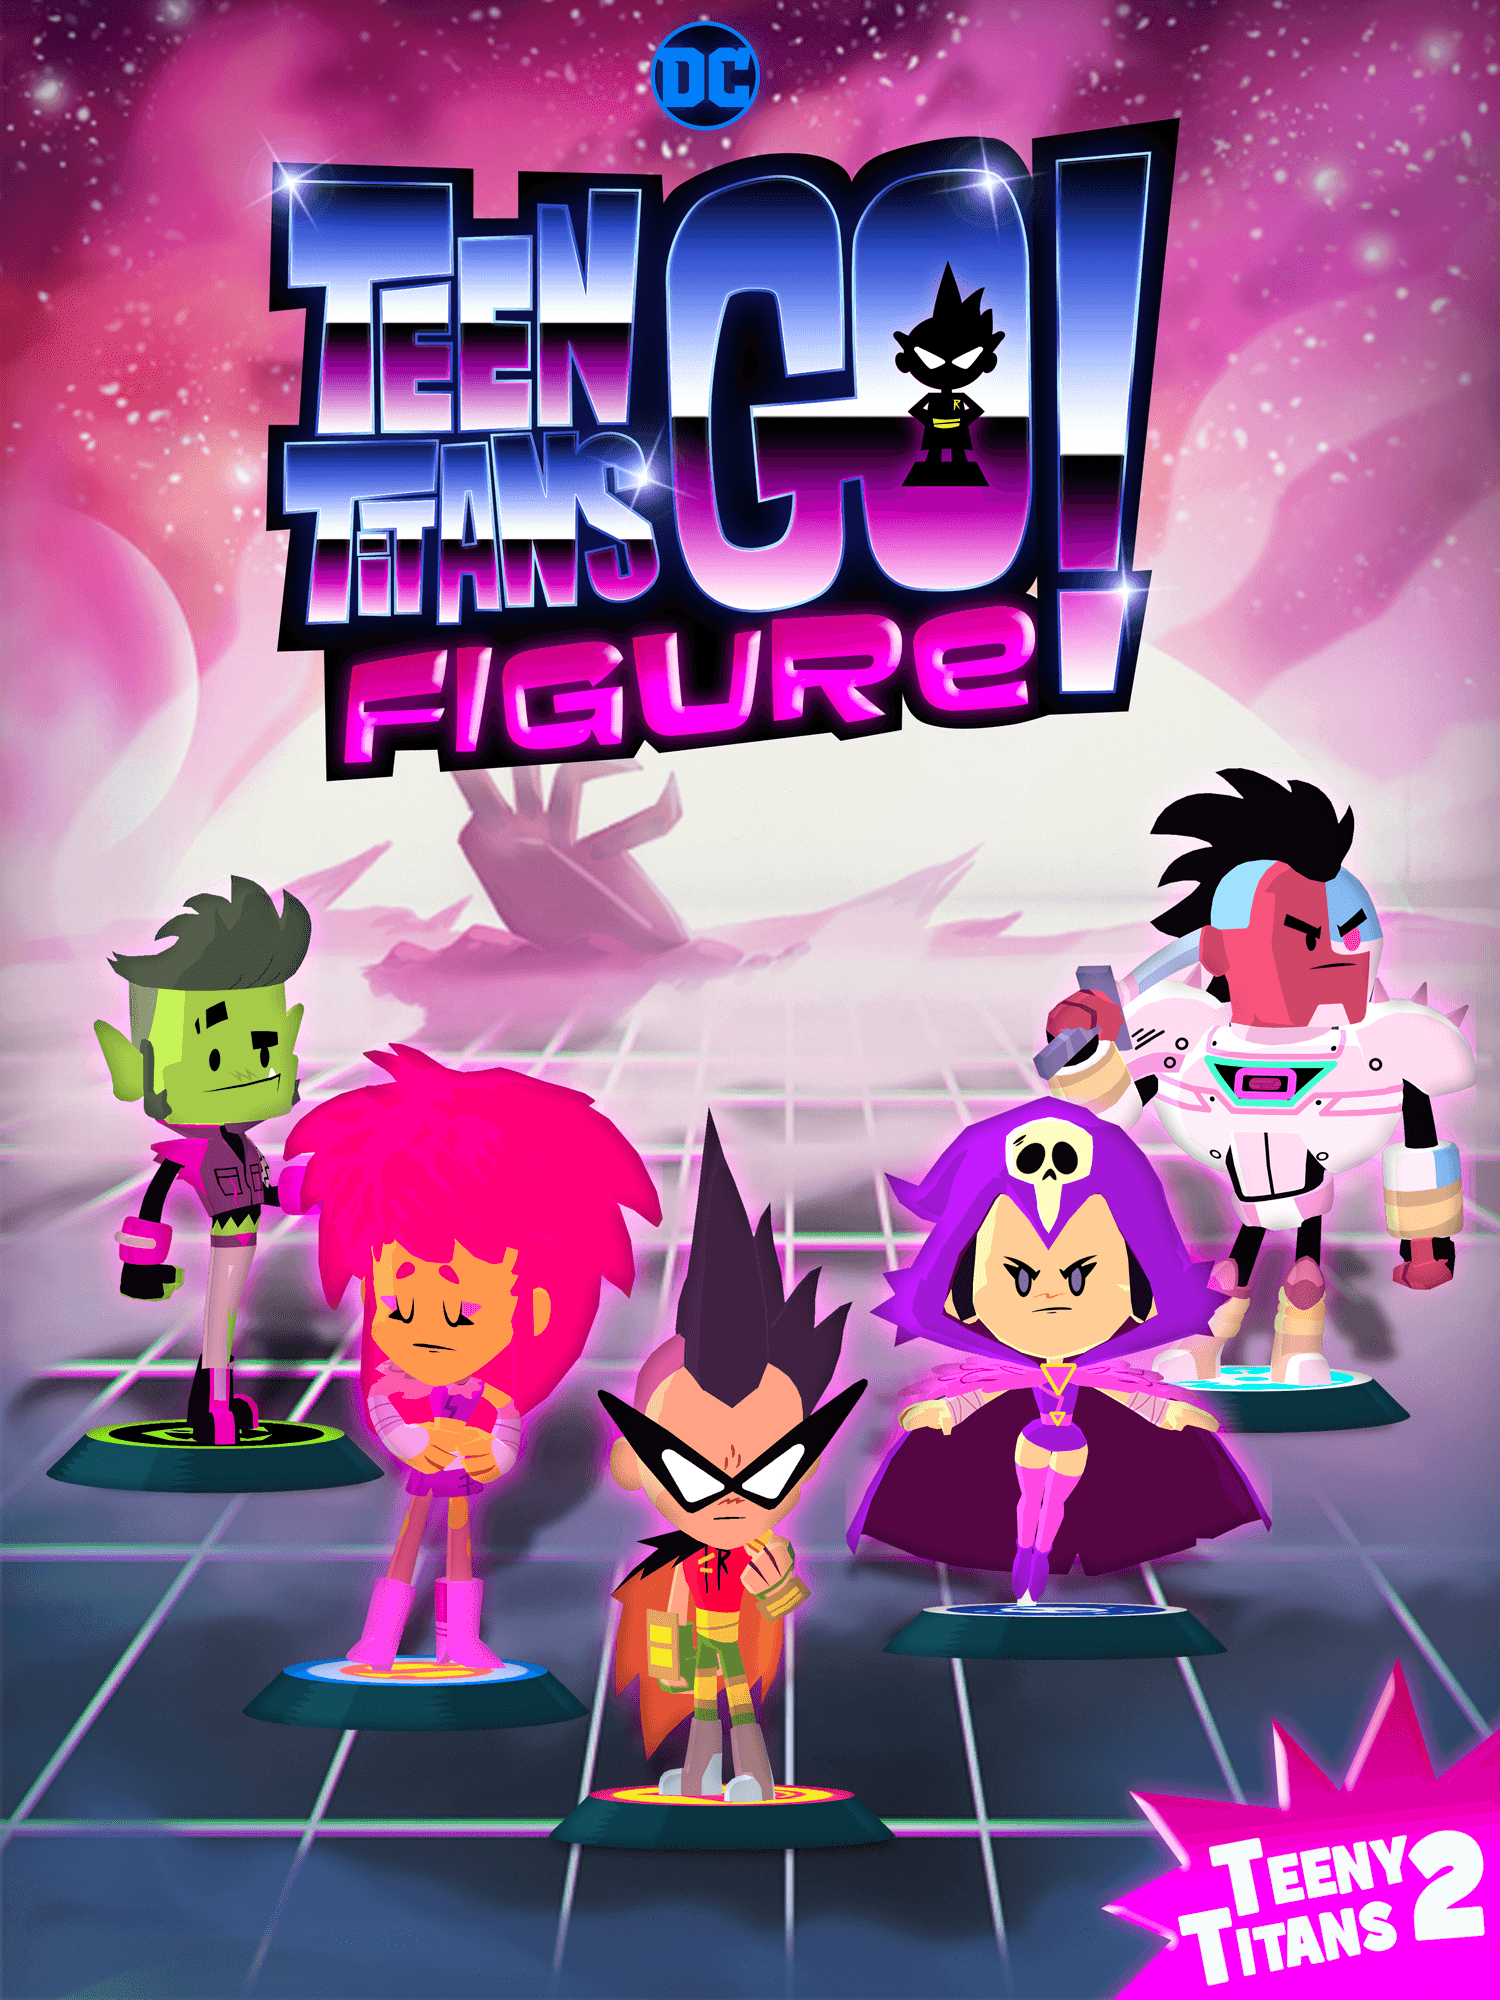 Teen Titans Go Figure Comes To Ios And Android This -7780